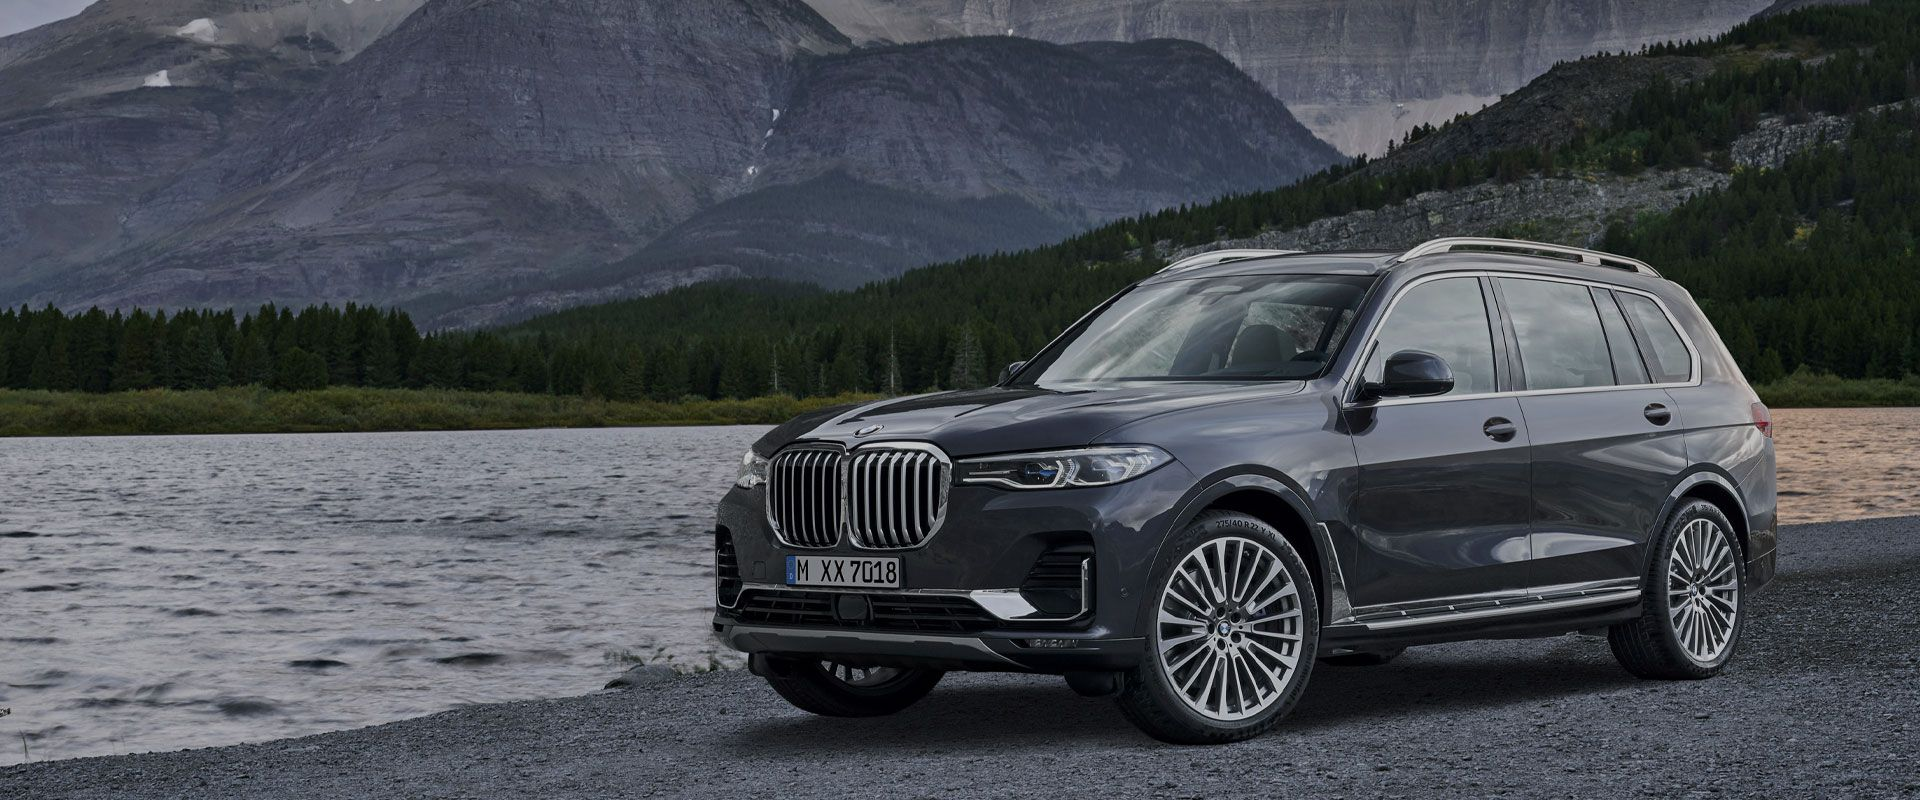 SUV Leasing Deals